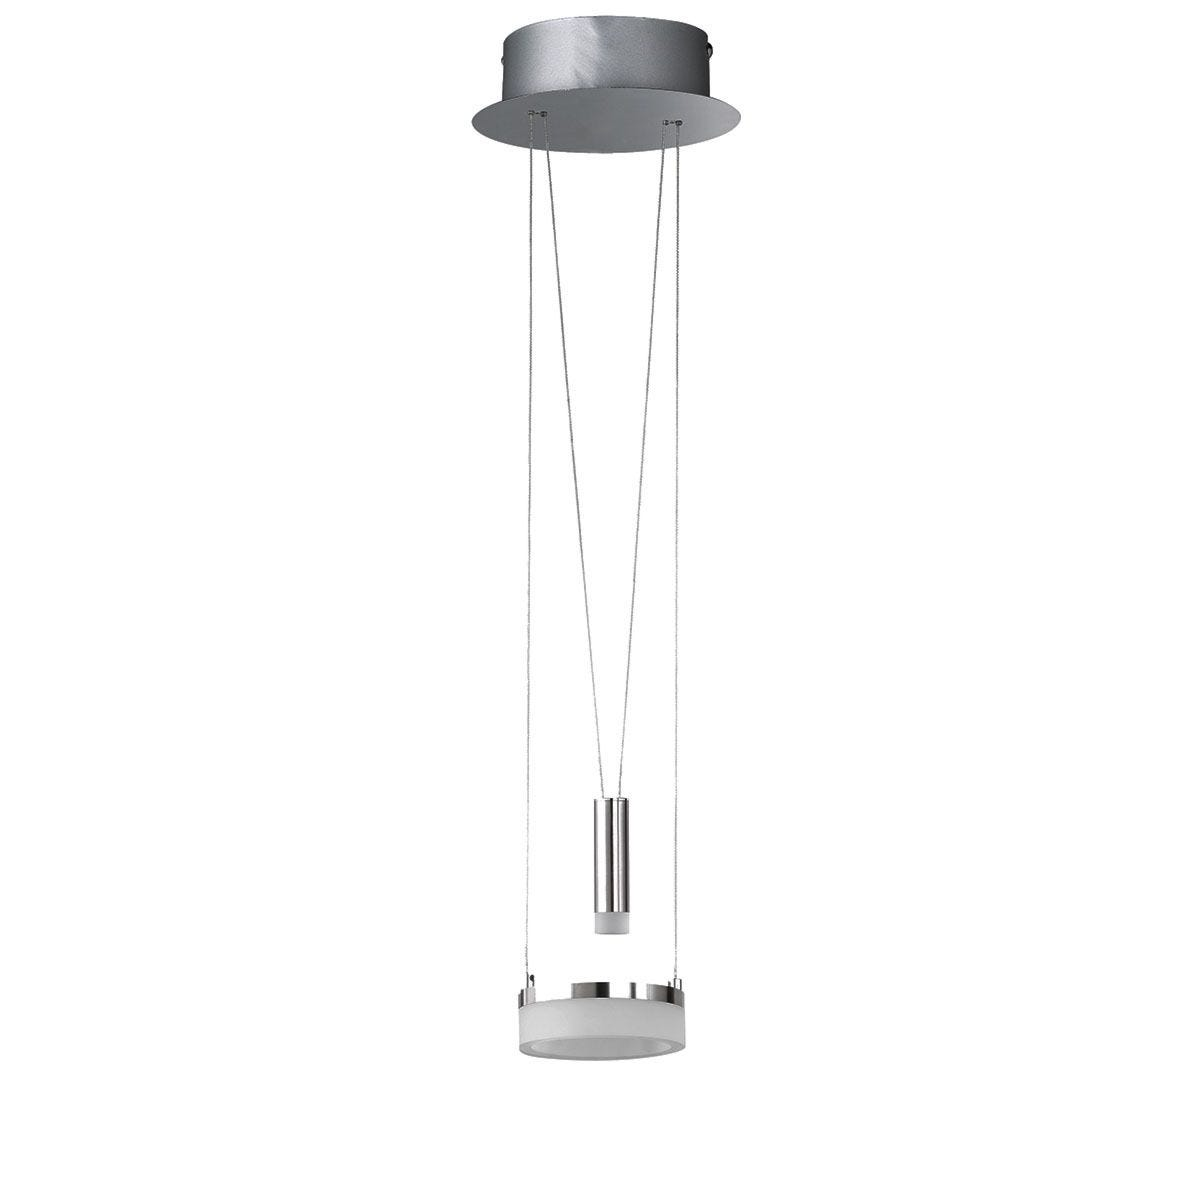 Wofi Jesse LED Pendant Ceiling Light - Nickel Matt Finish